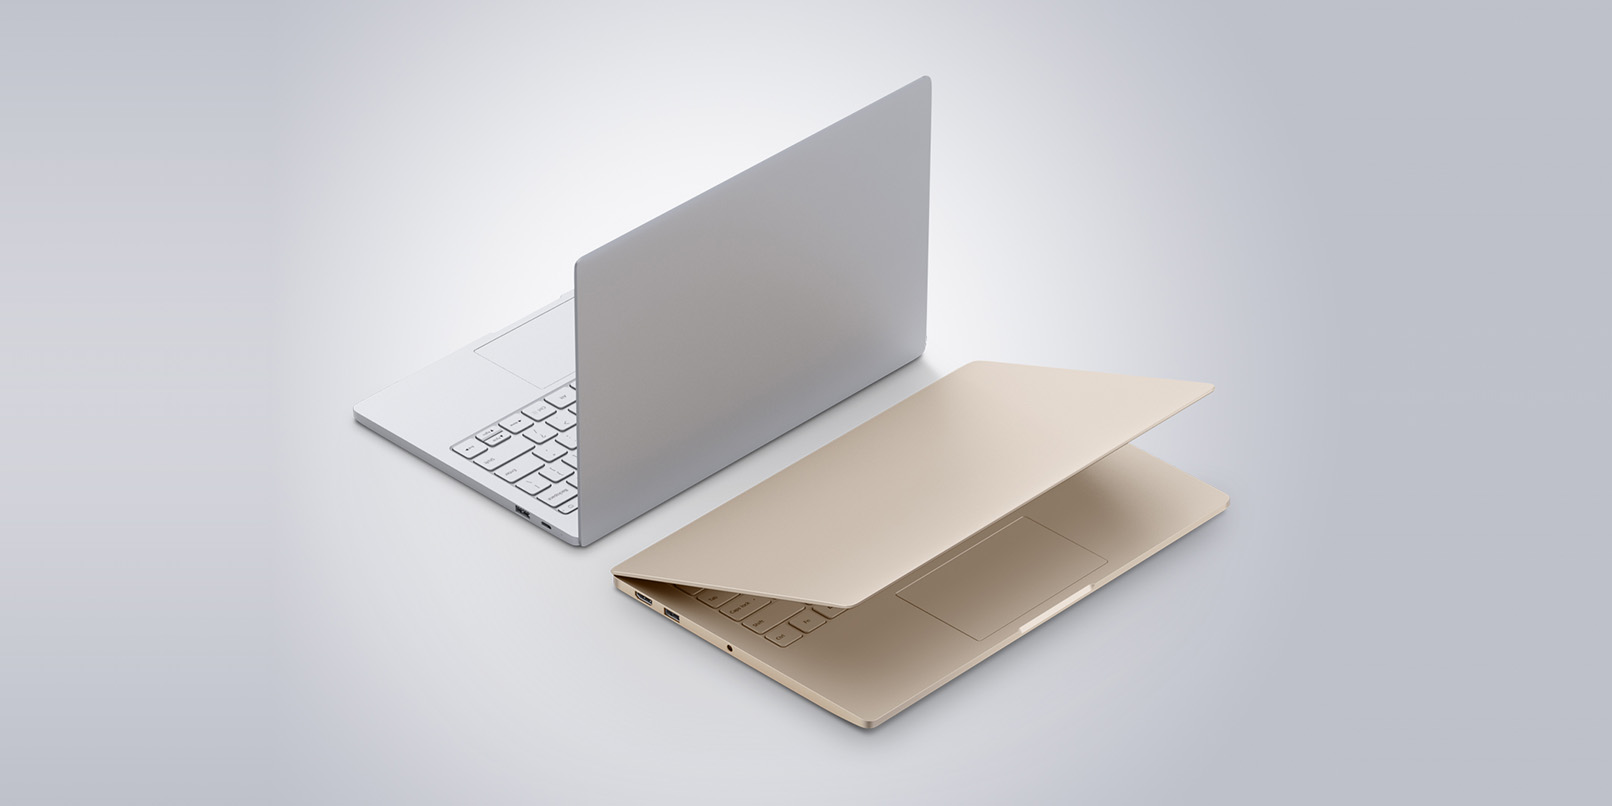 Xiaomi's getting into the laptop game with its MacBook Air clone